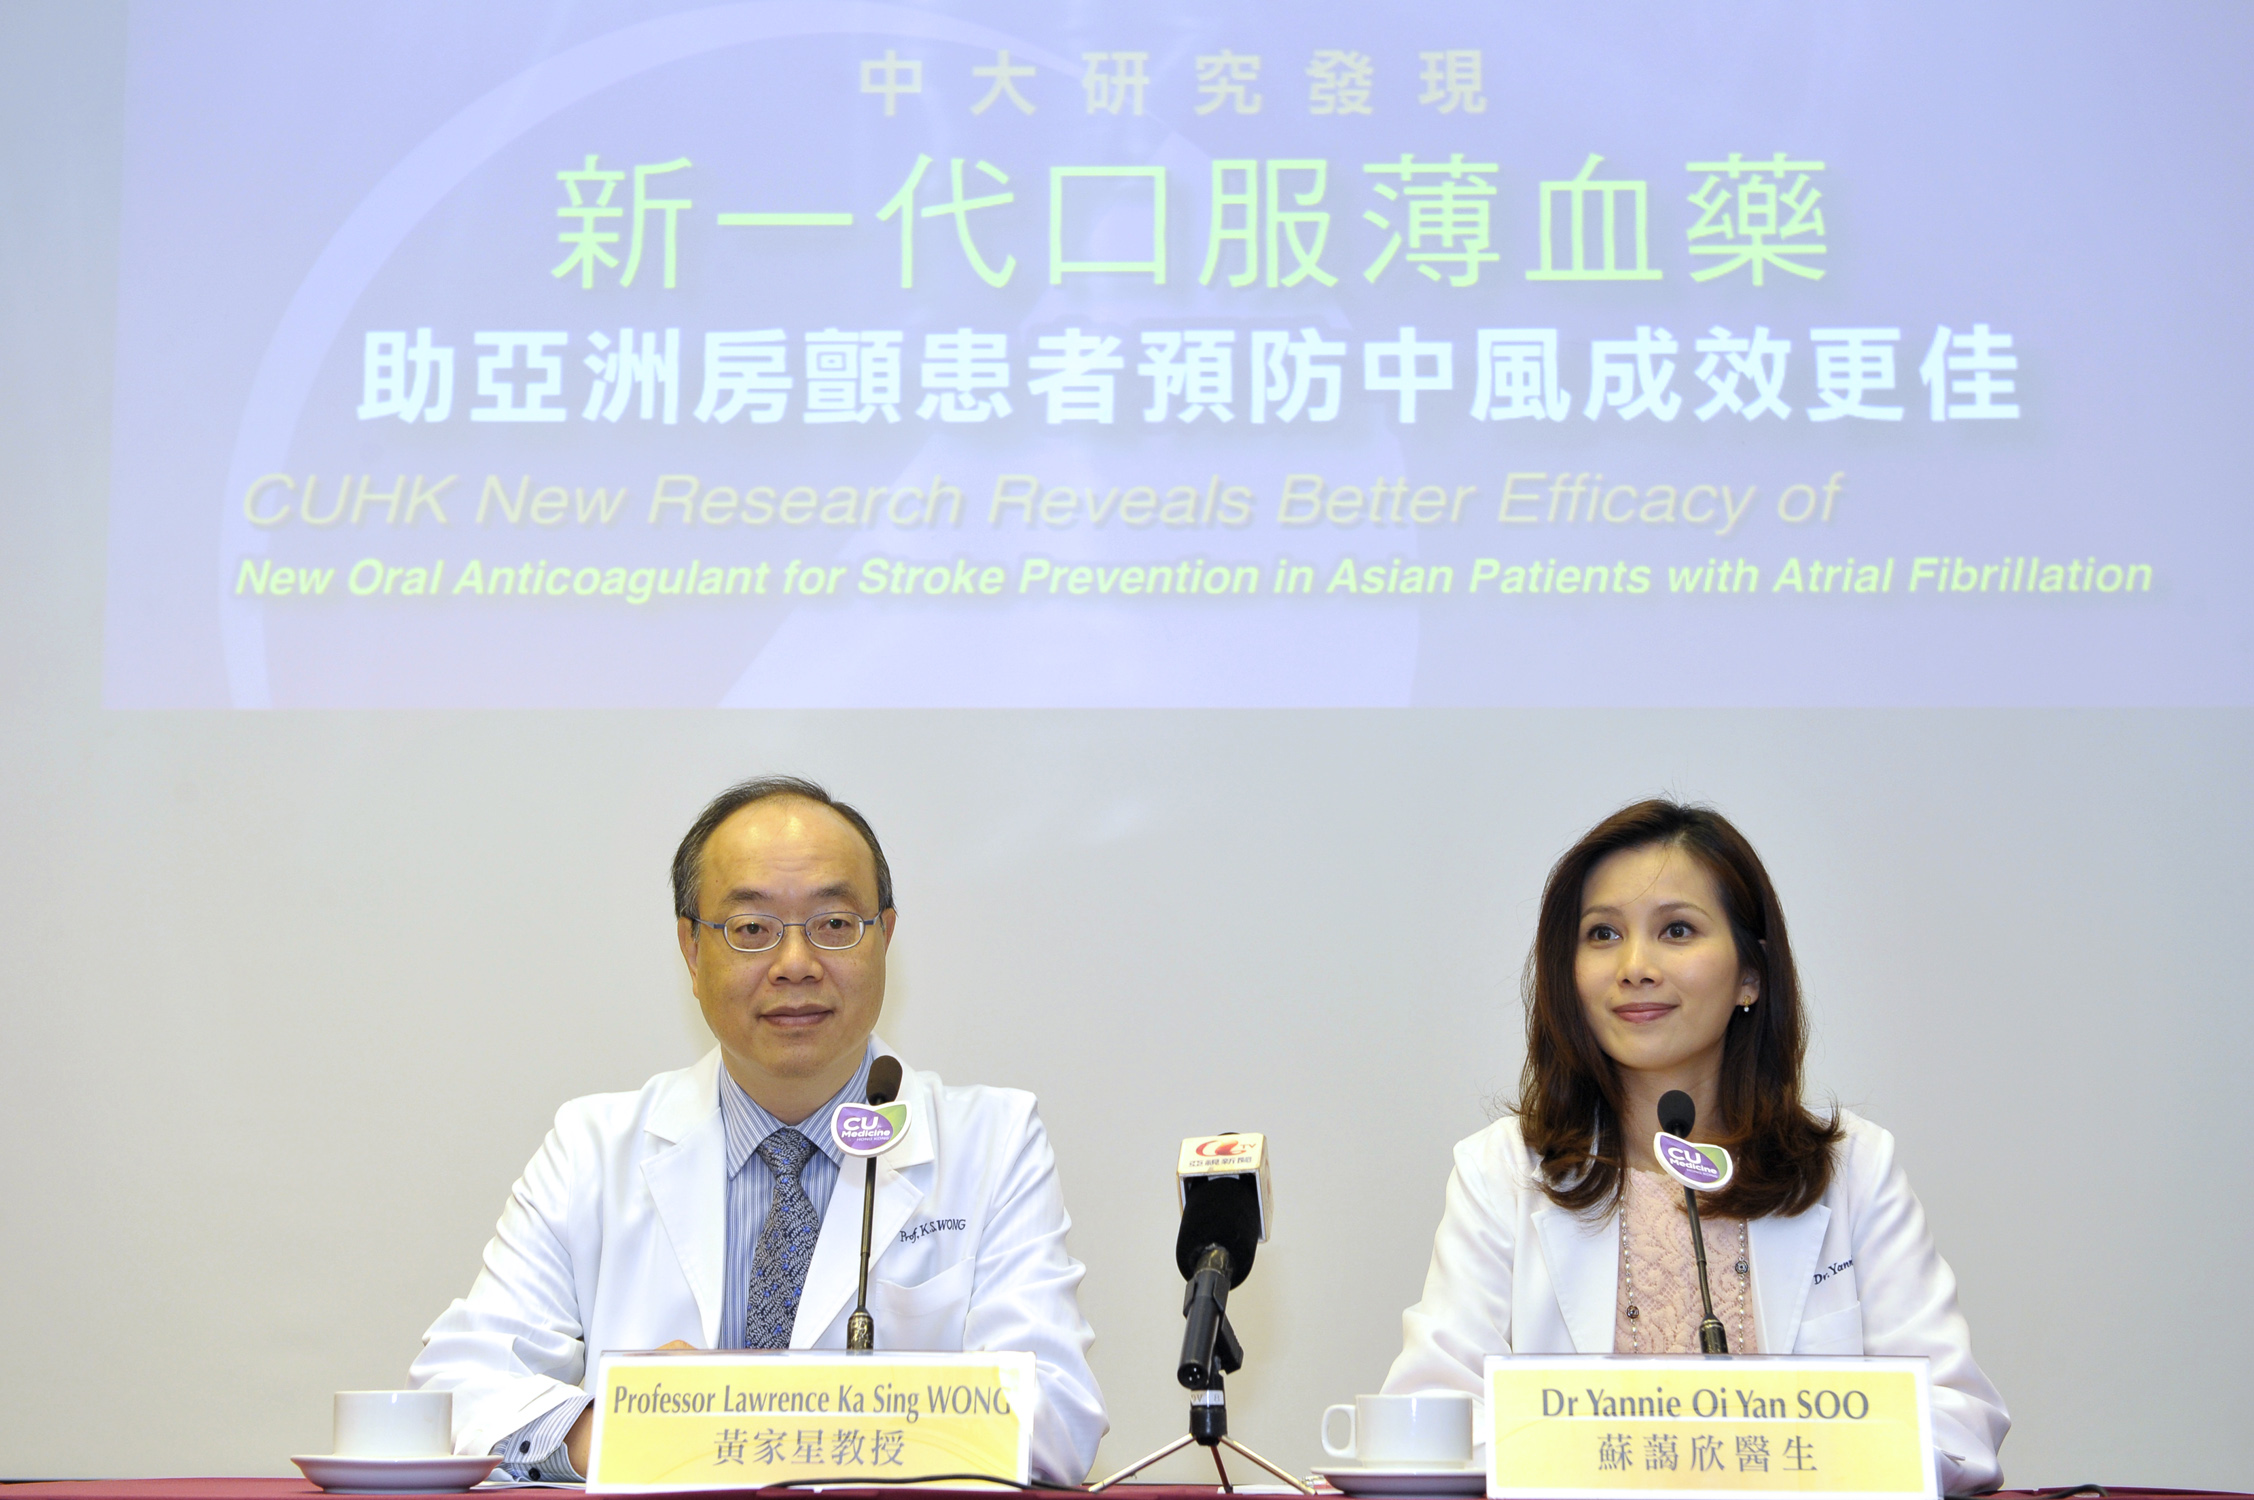 Prof. K.S. Wong, Chief of Neurology, CUHK, and Dr. Yannie Soo, Assistant Professor